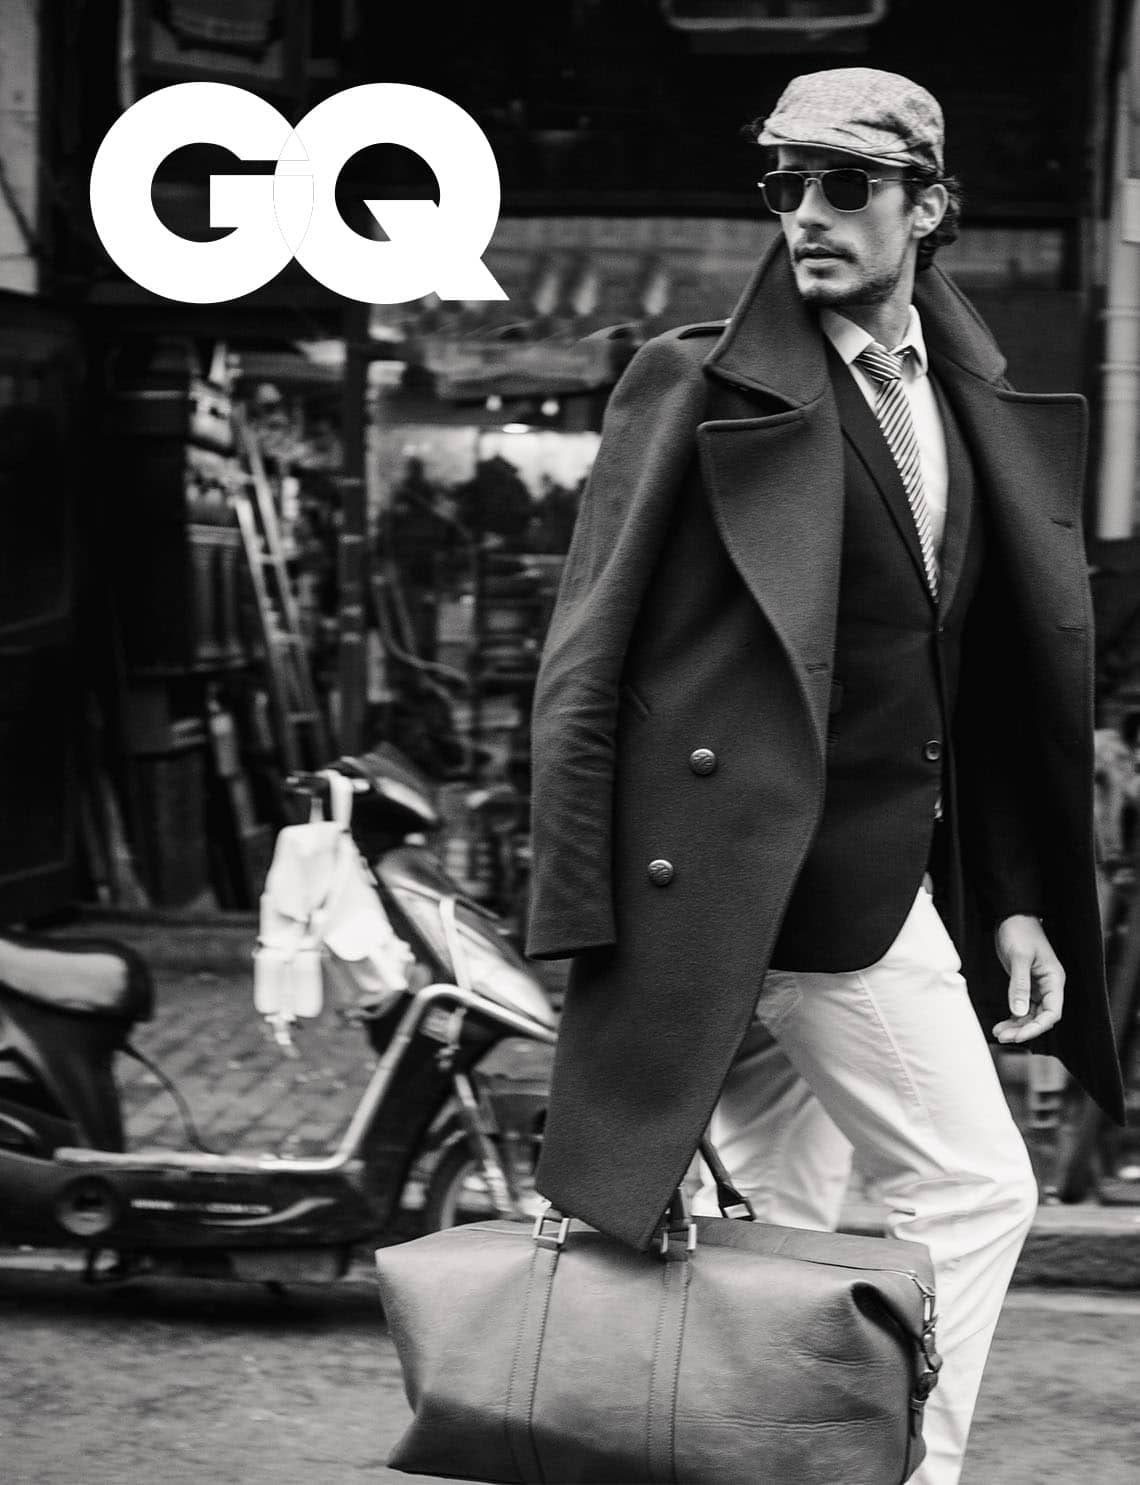 Advertise locally in GQ in more than 100 markets across the U.S.